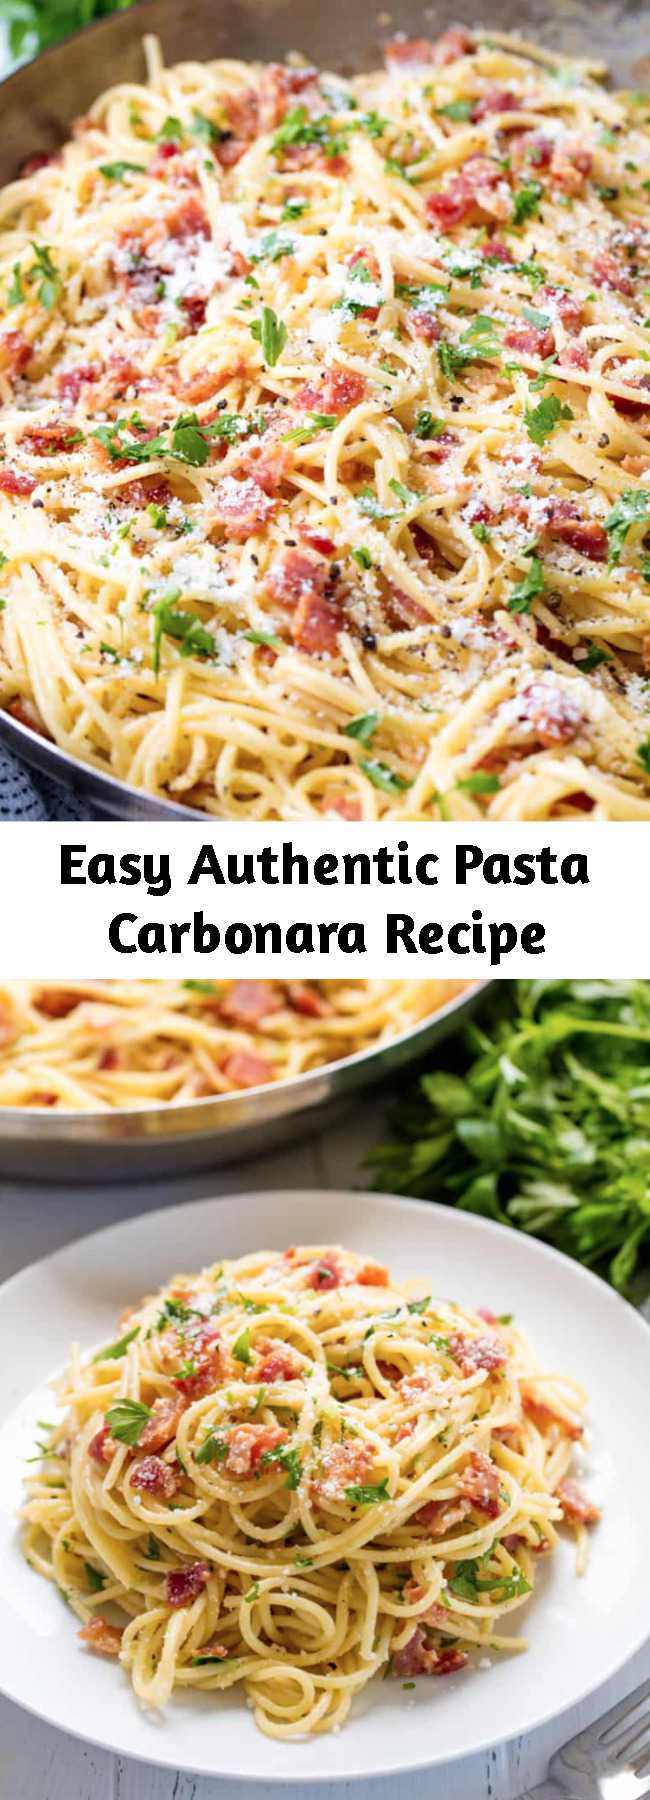 Easy Authentic Pasta Carbonara Recipe - Authentic Pasta Carbonara is easy to make, full of bacon flavor, and smothered in a cheesy egg sauce that will make you crave more. Your family will love this easy weeknight dinner! #recipe #pasta